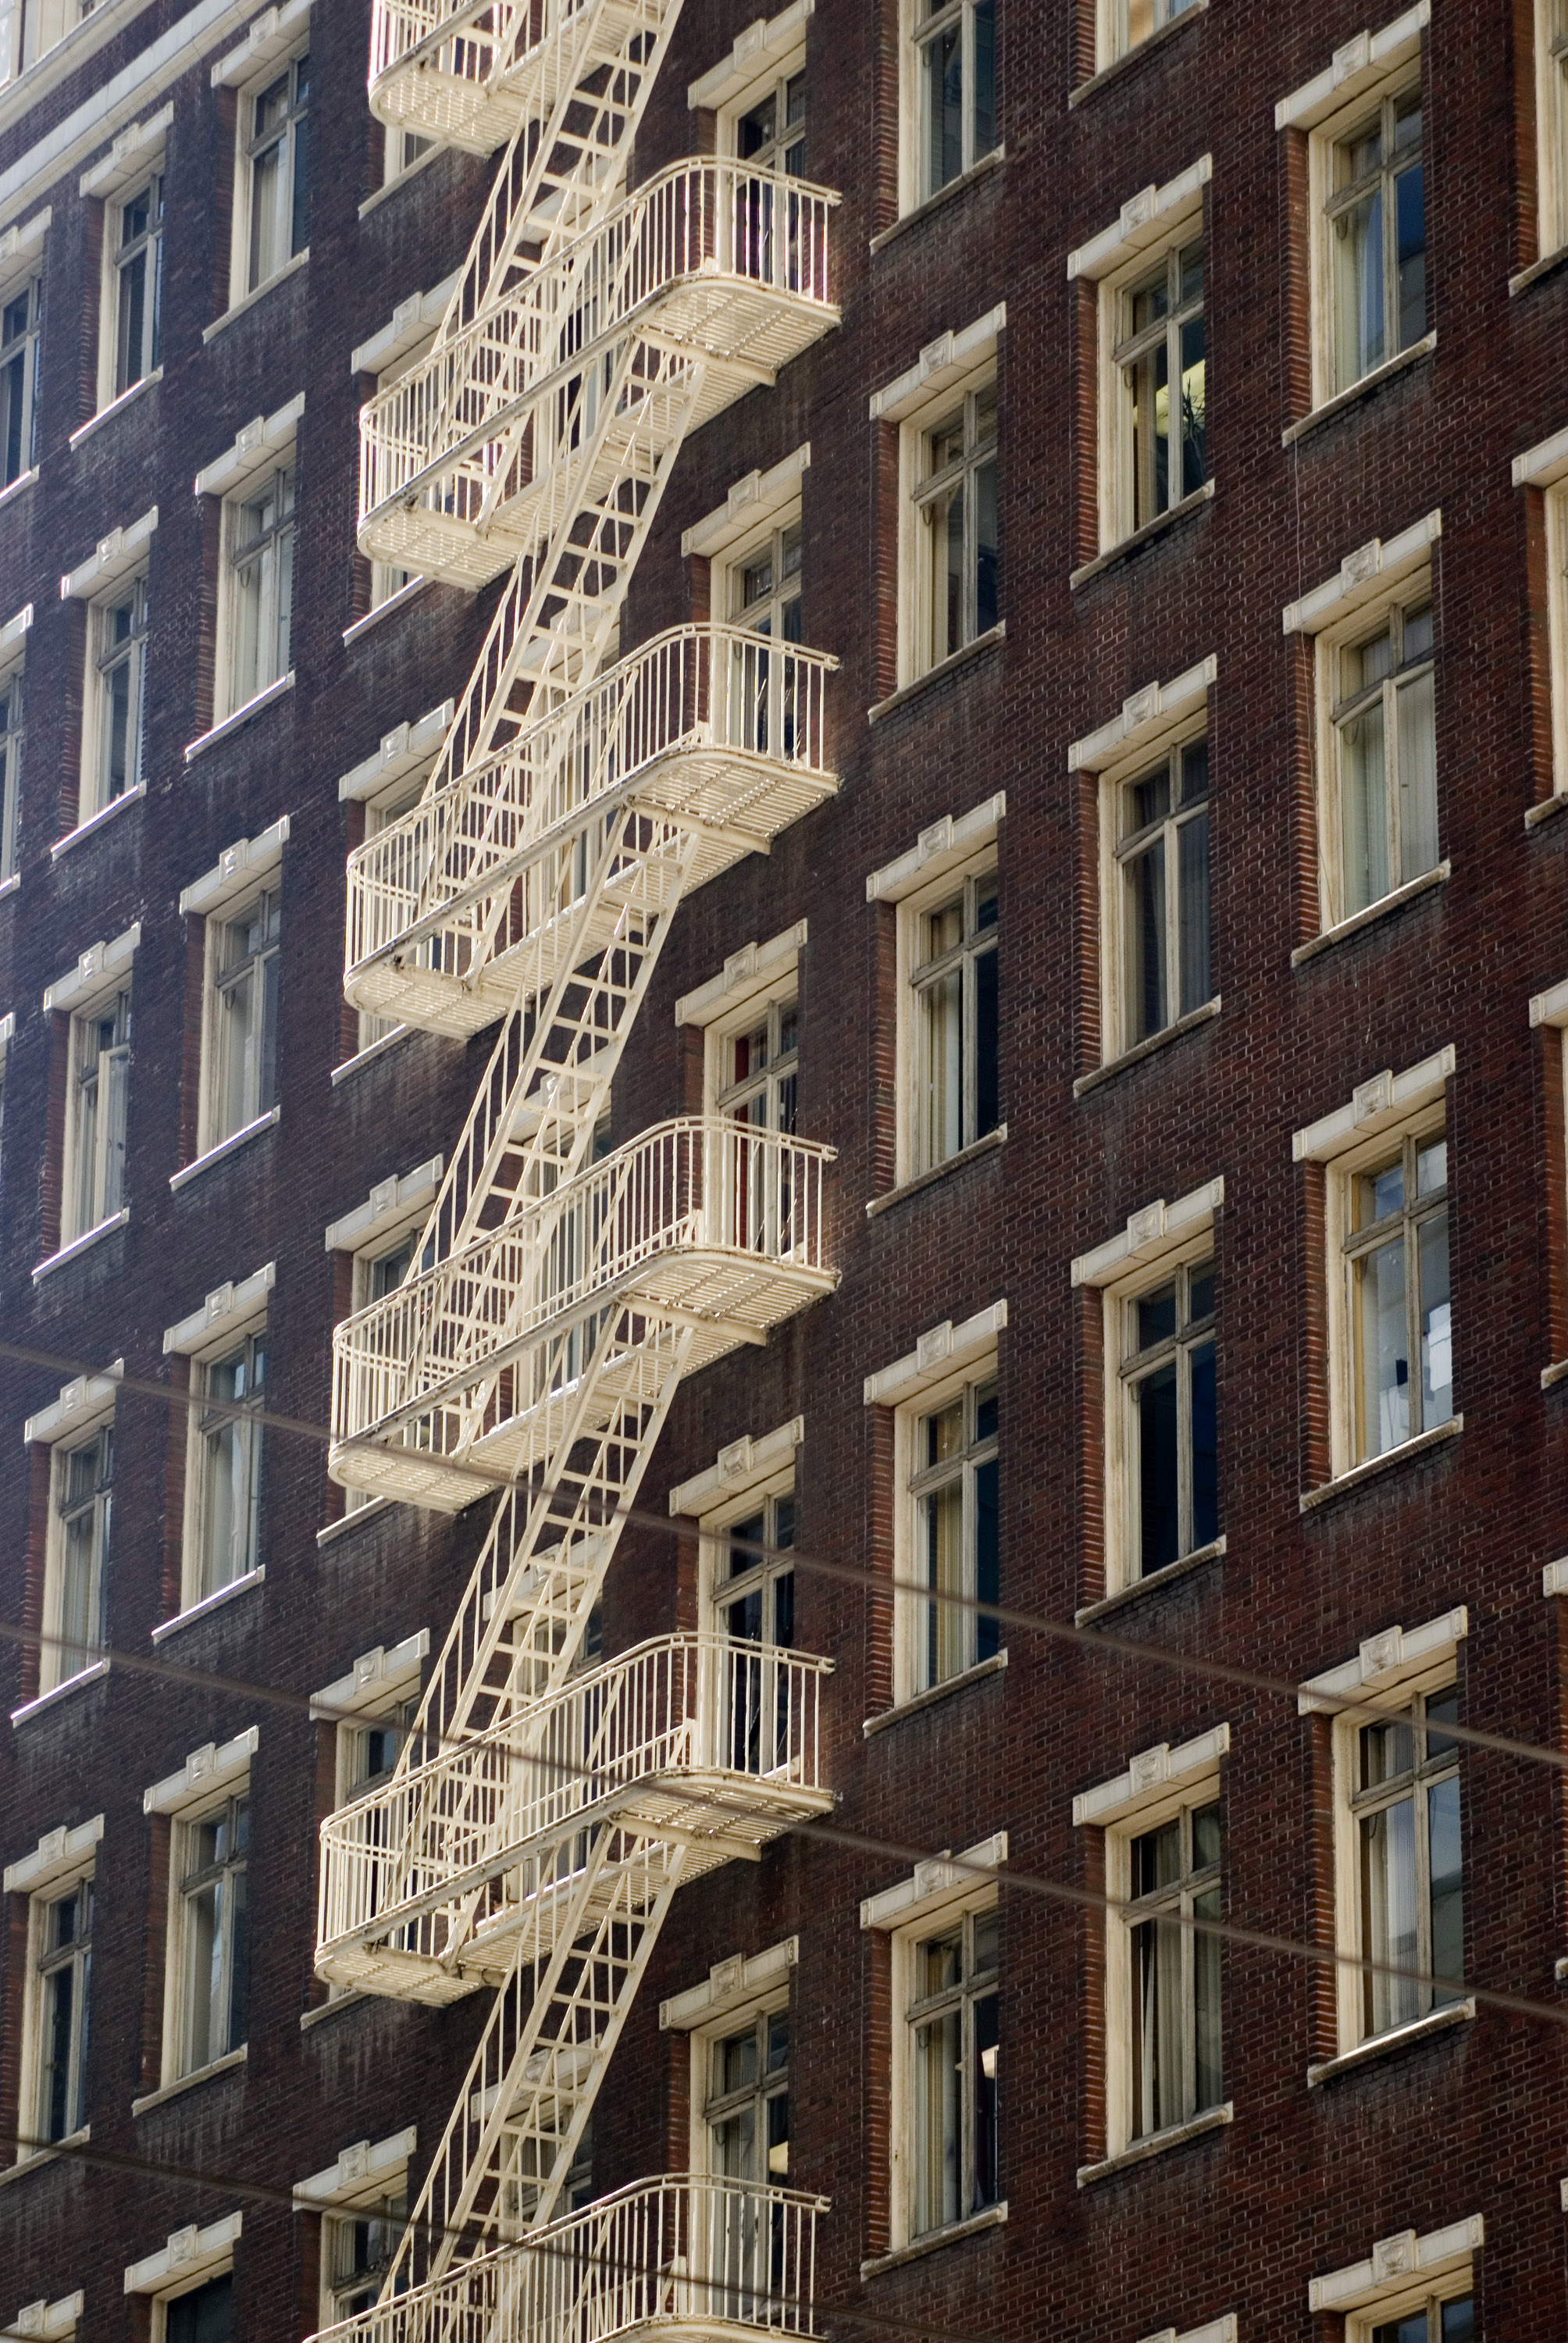 Free Stock Photo 5557 Fire Escape  freeimageslive